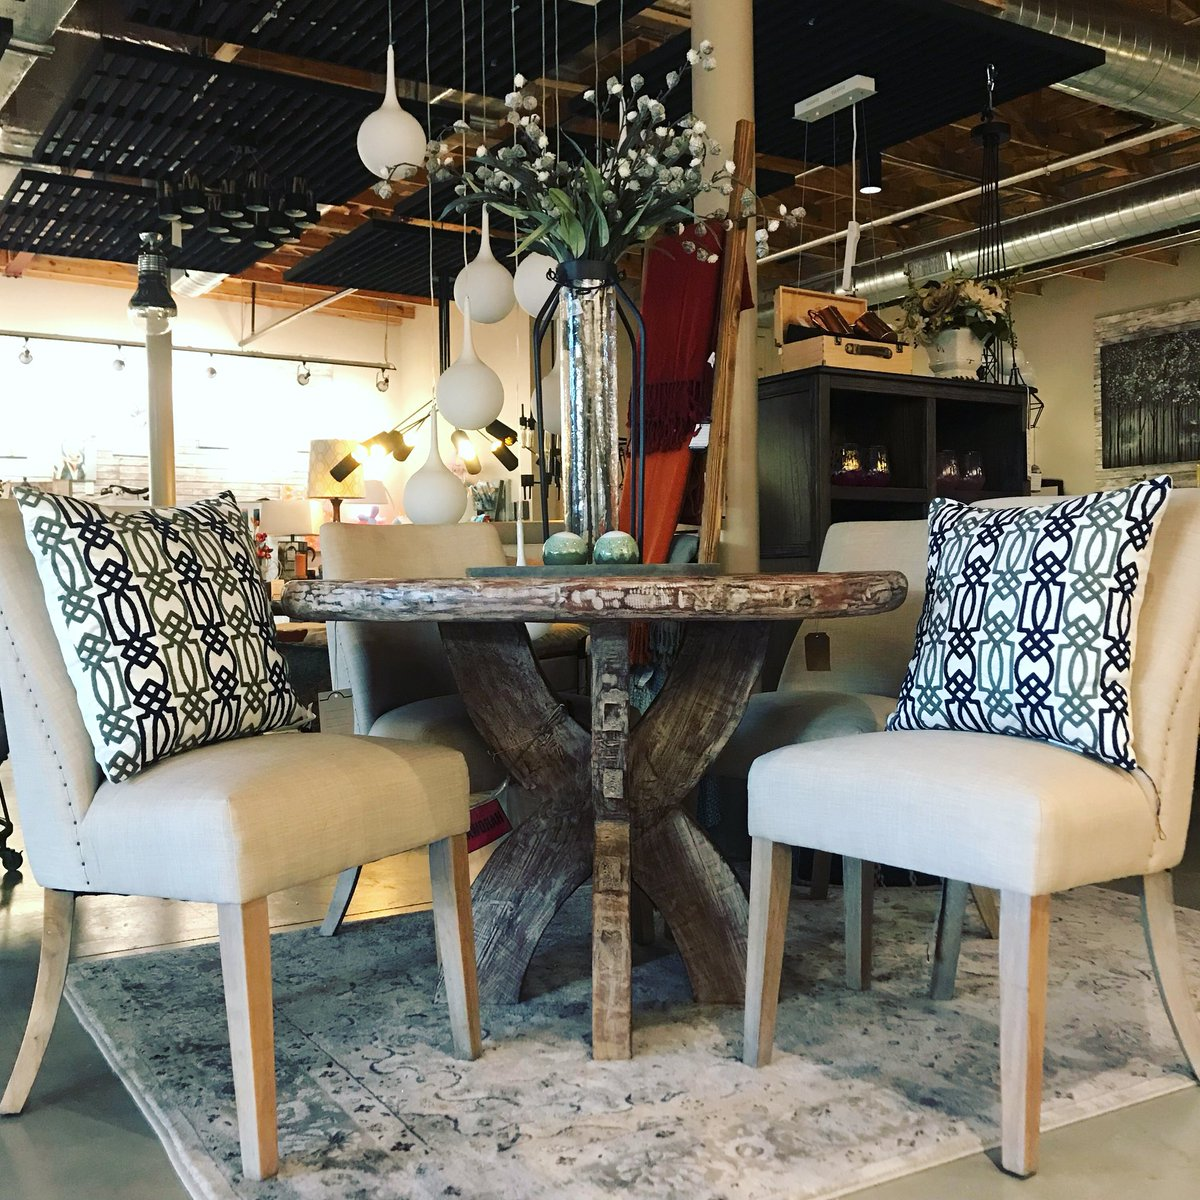 Furnished by farrah on twitter this gorgeous found wood round table just arrived and we are absolutely obsessed with it homedecor newproducts love